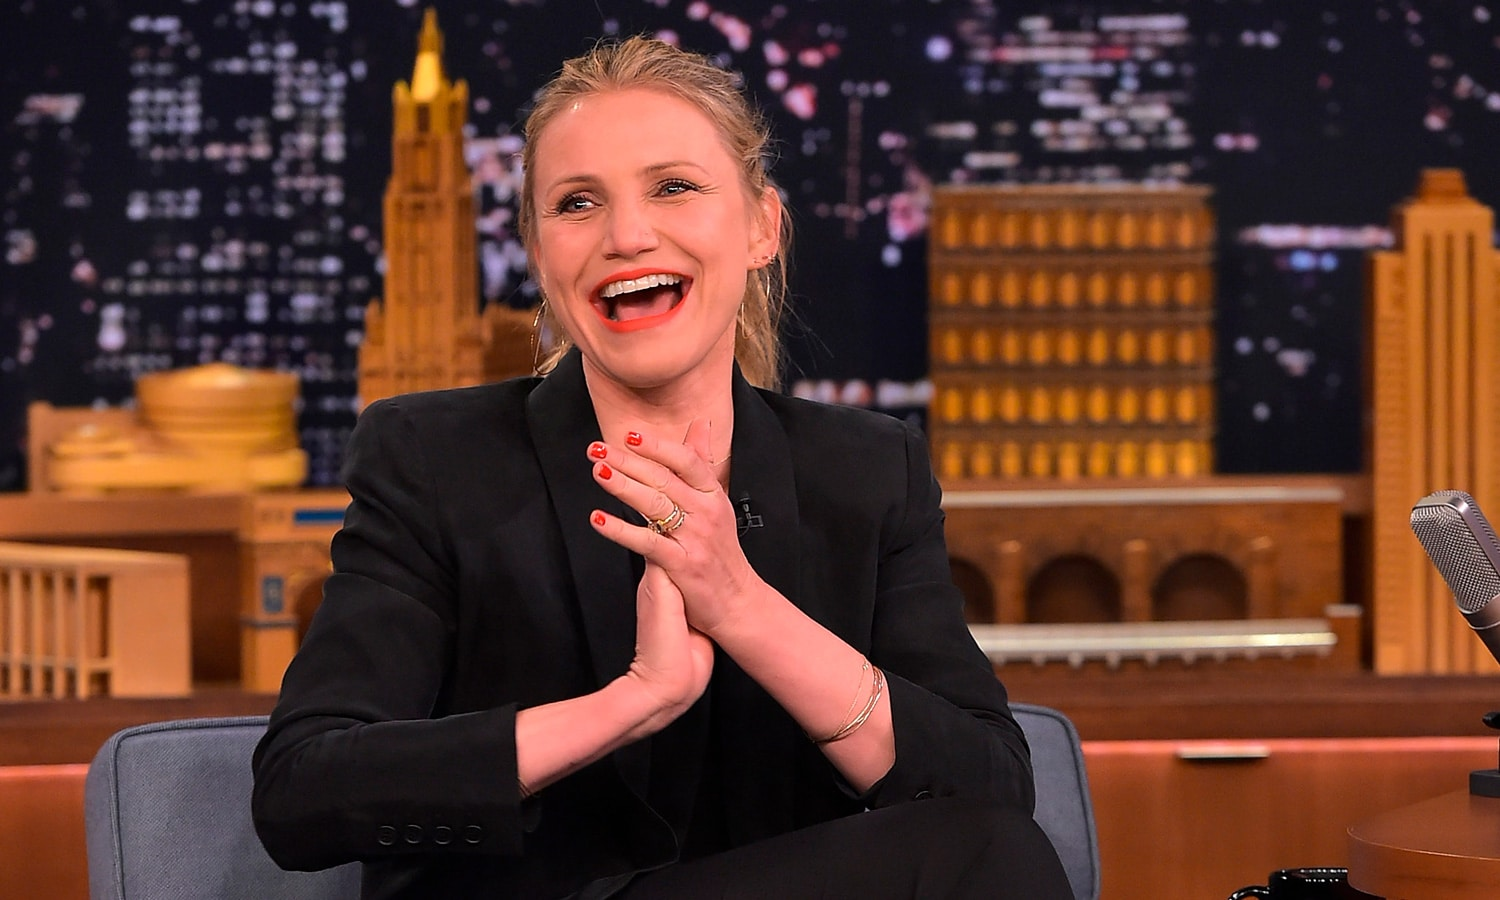 Does Cameron Diaz Smoke Weed?